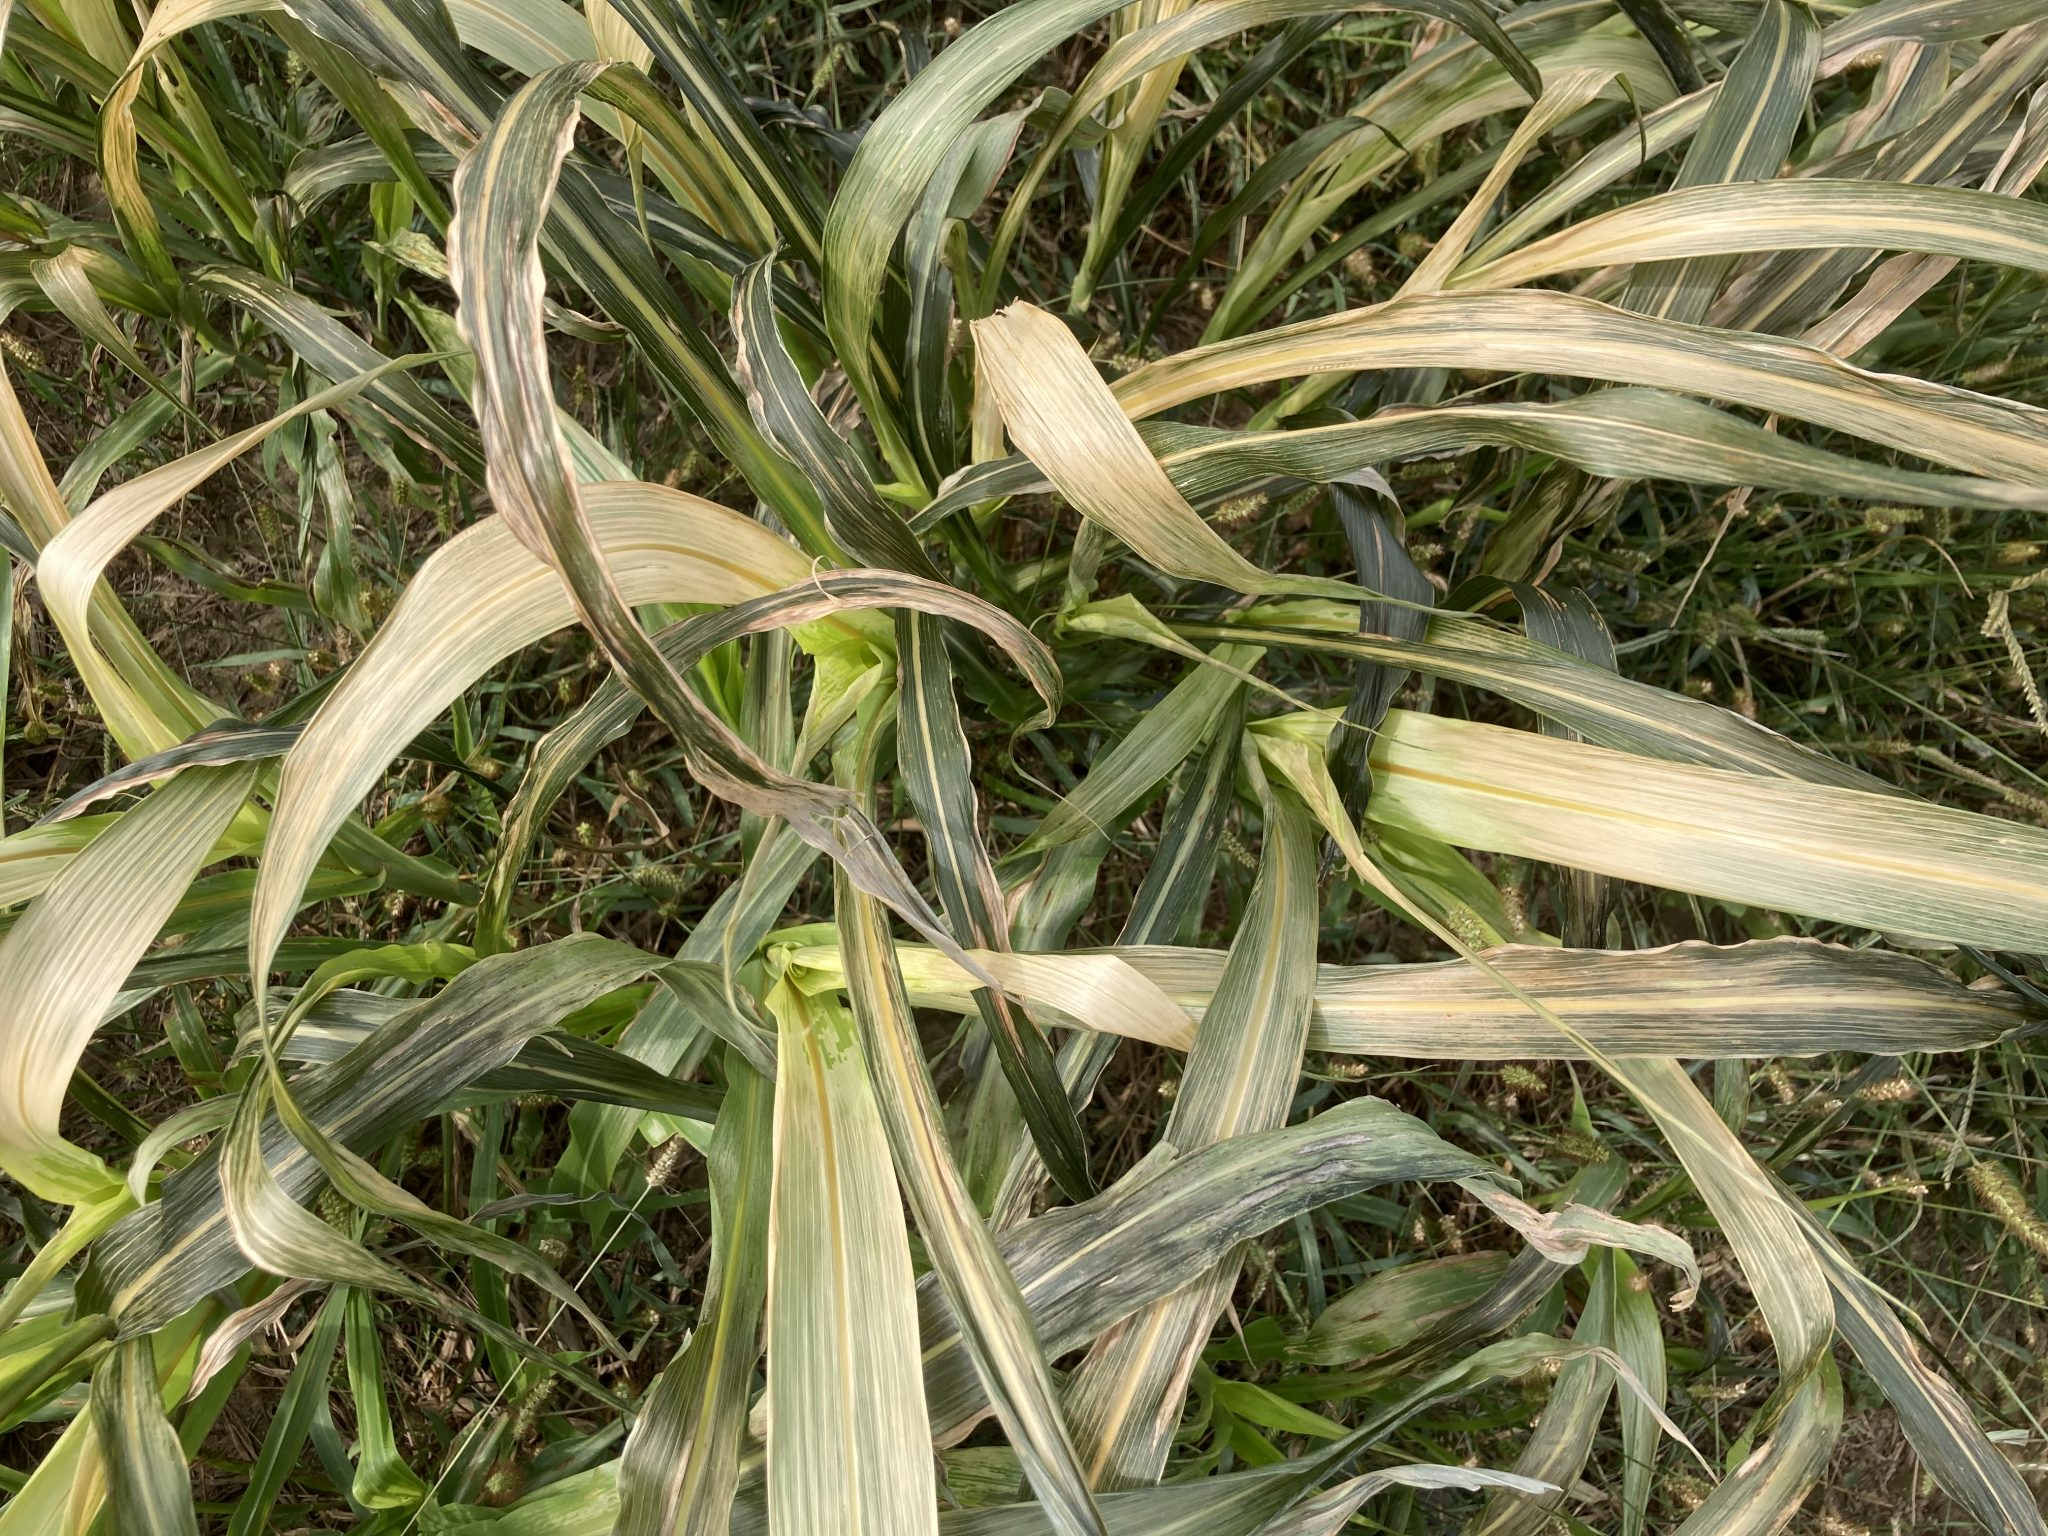 Sorghum-sudangrass suffered freeze damage this past weekend in some areas of Indiana. Prussic acid poisoning potential can be minimized with management. (Photo Credit: Keith Johnson)